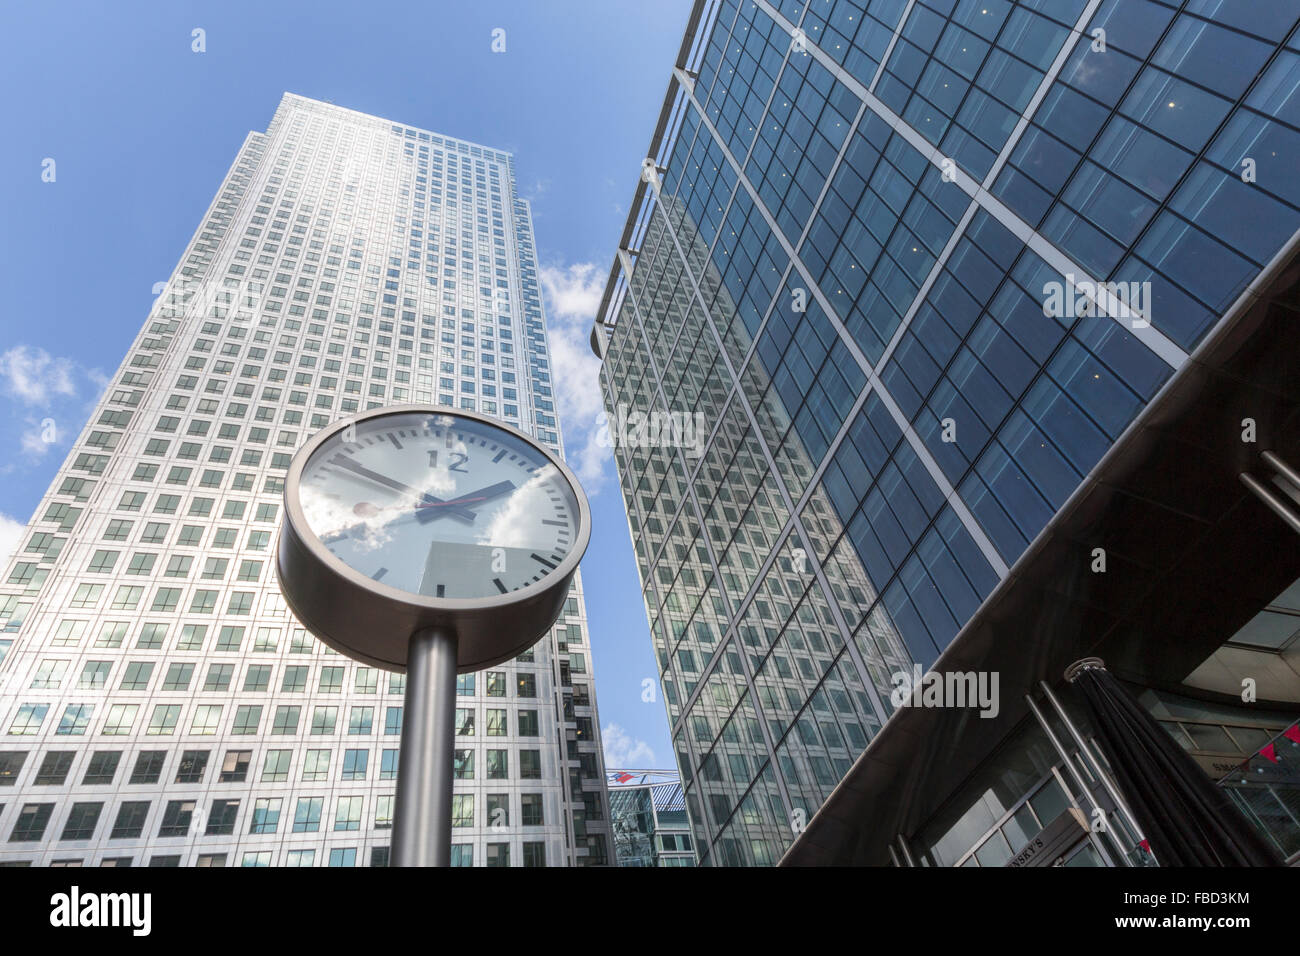 Skyscrapers at Canary Wharf, London, United Kingdom - Stock Image